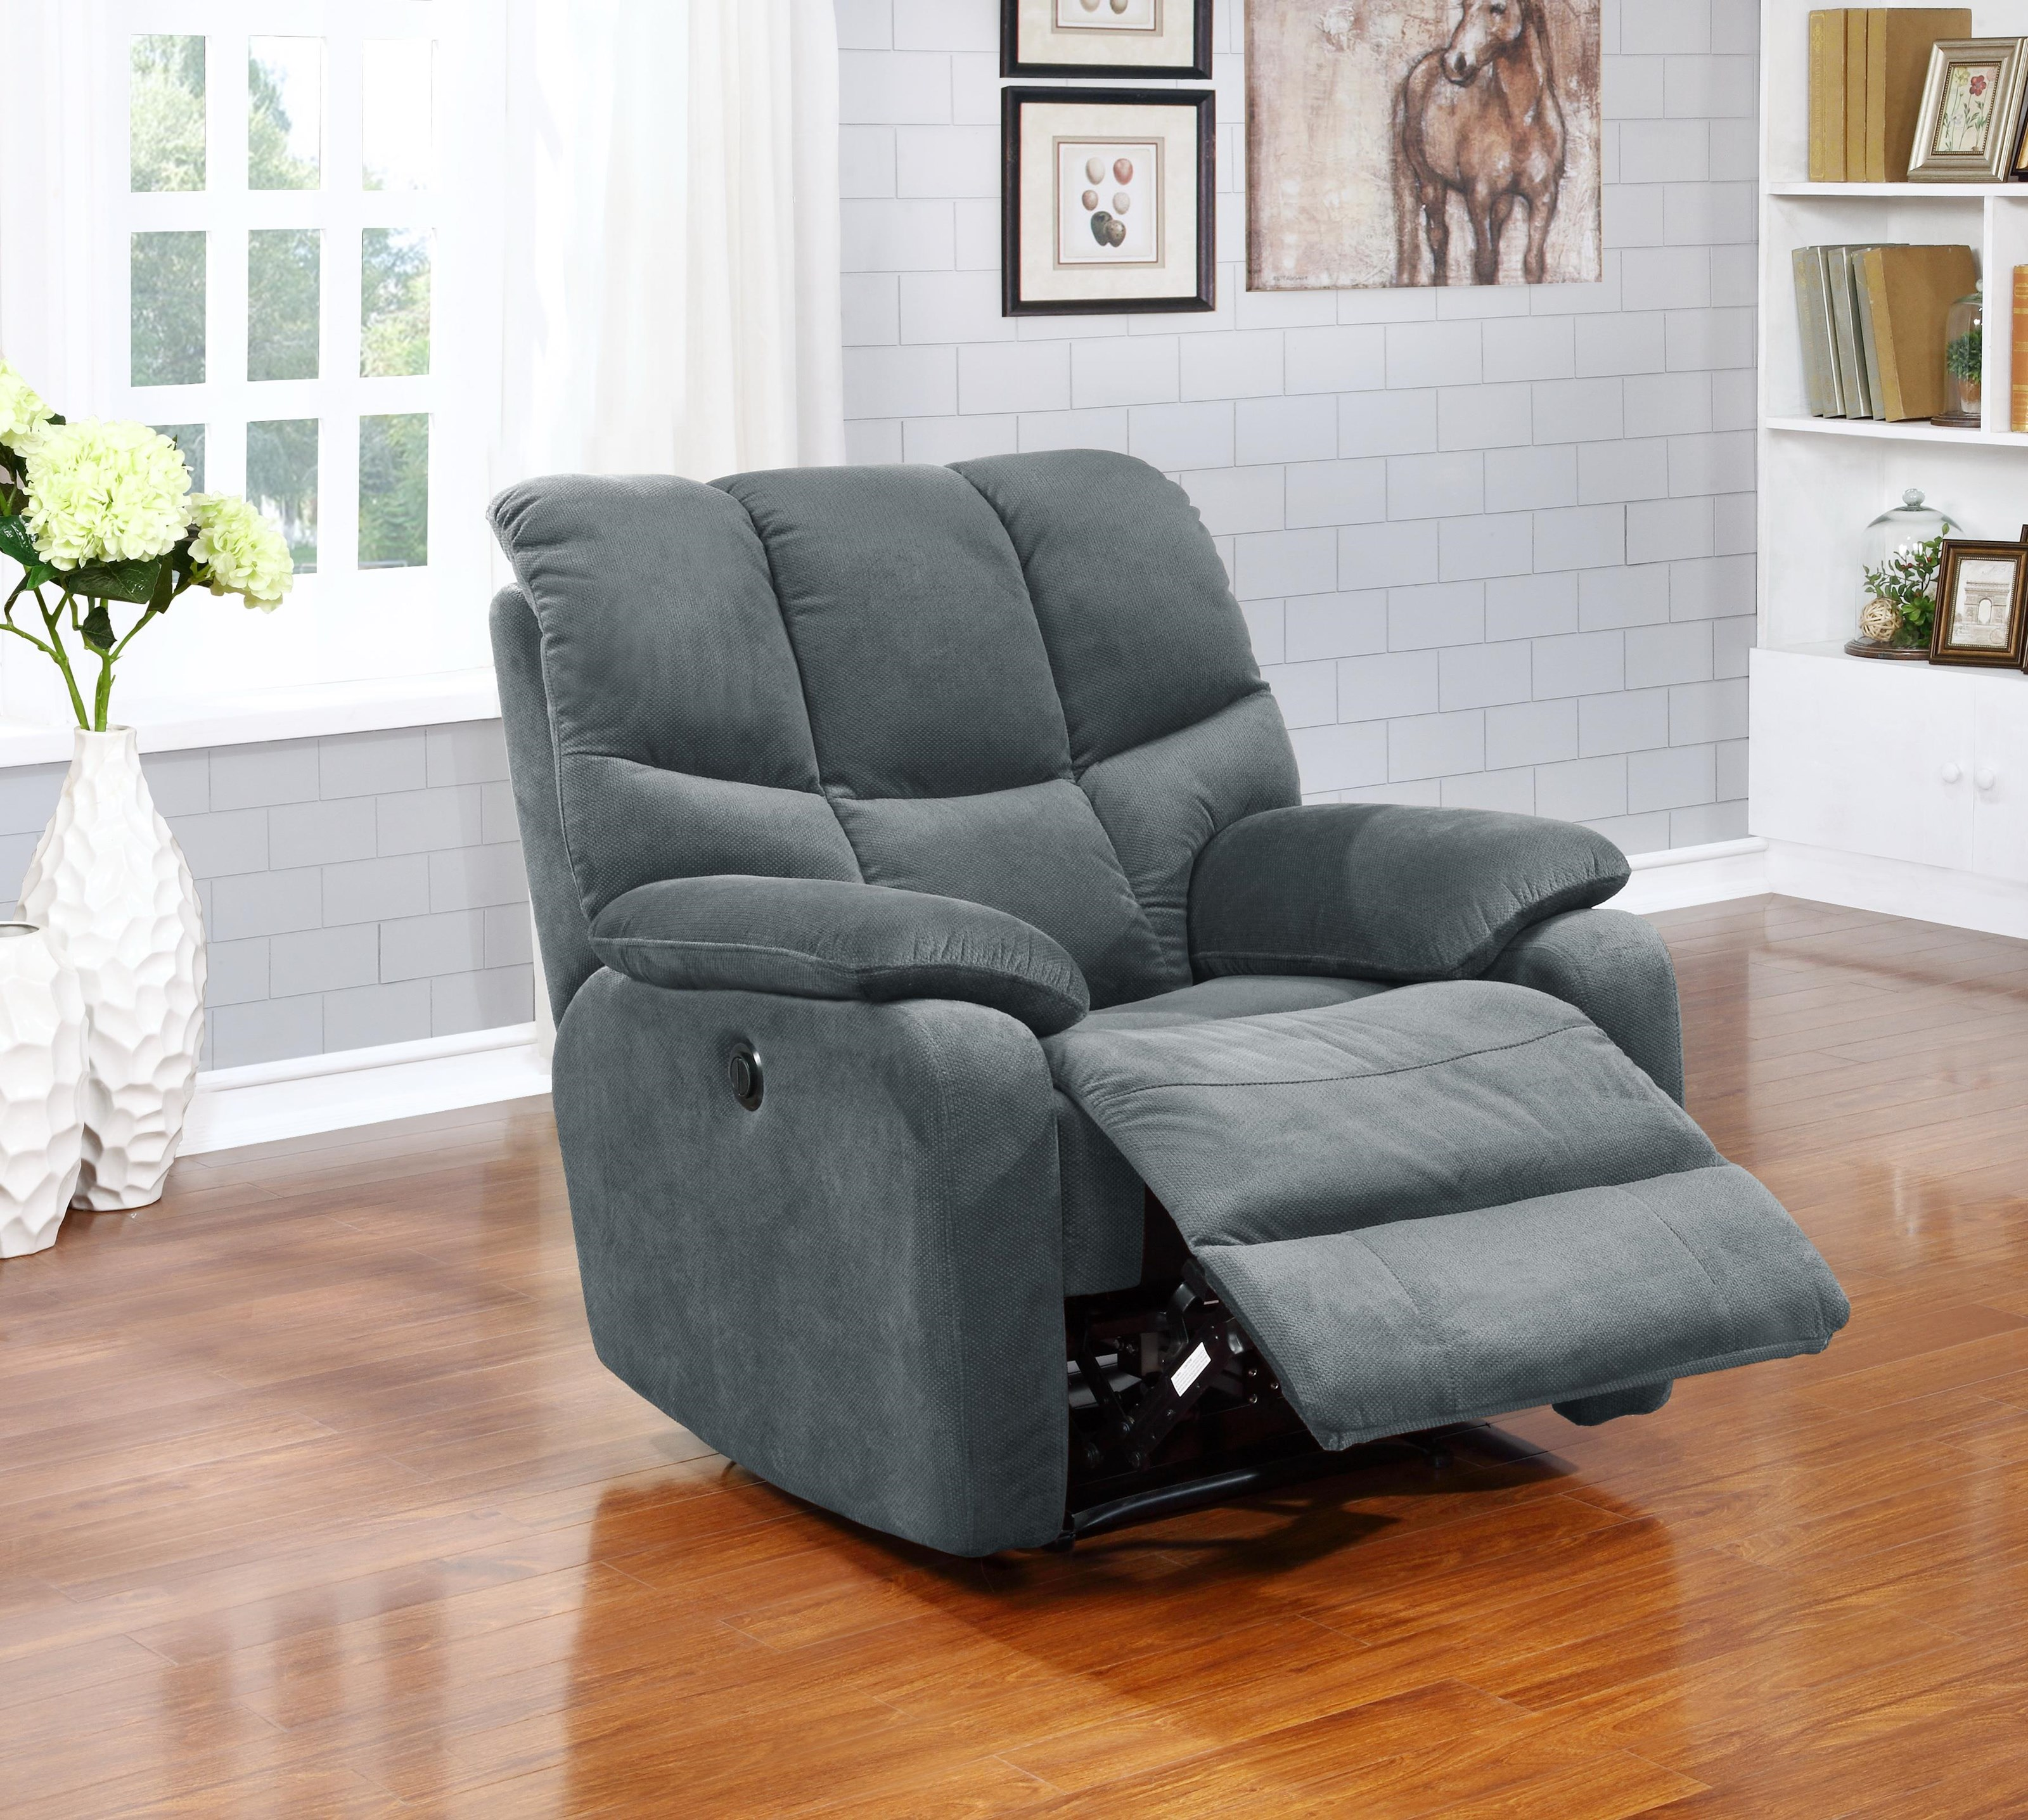 Jerry Power Chaise Recliner by Amalfi Home Furniture at Sam Levitz Furniture